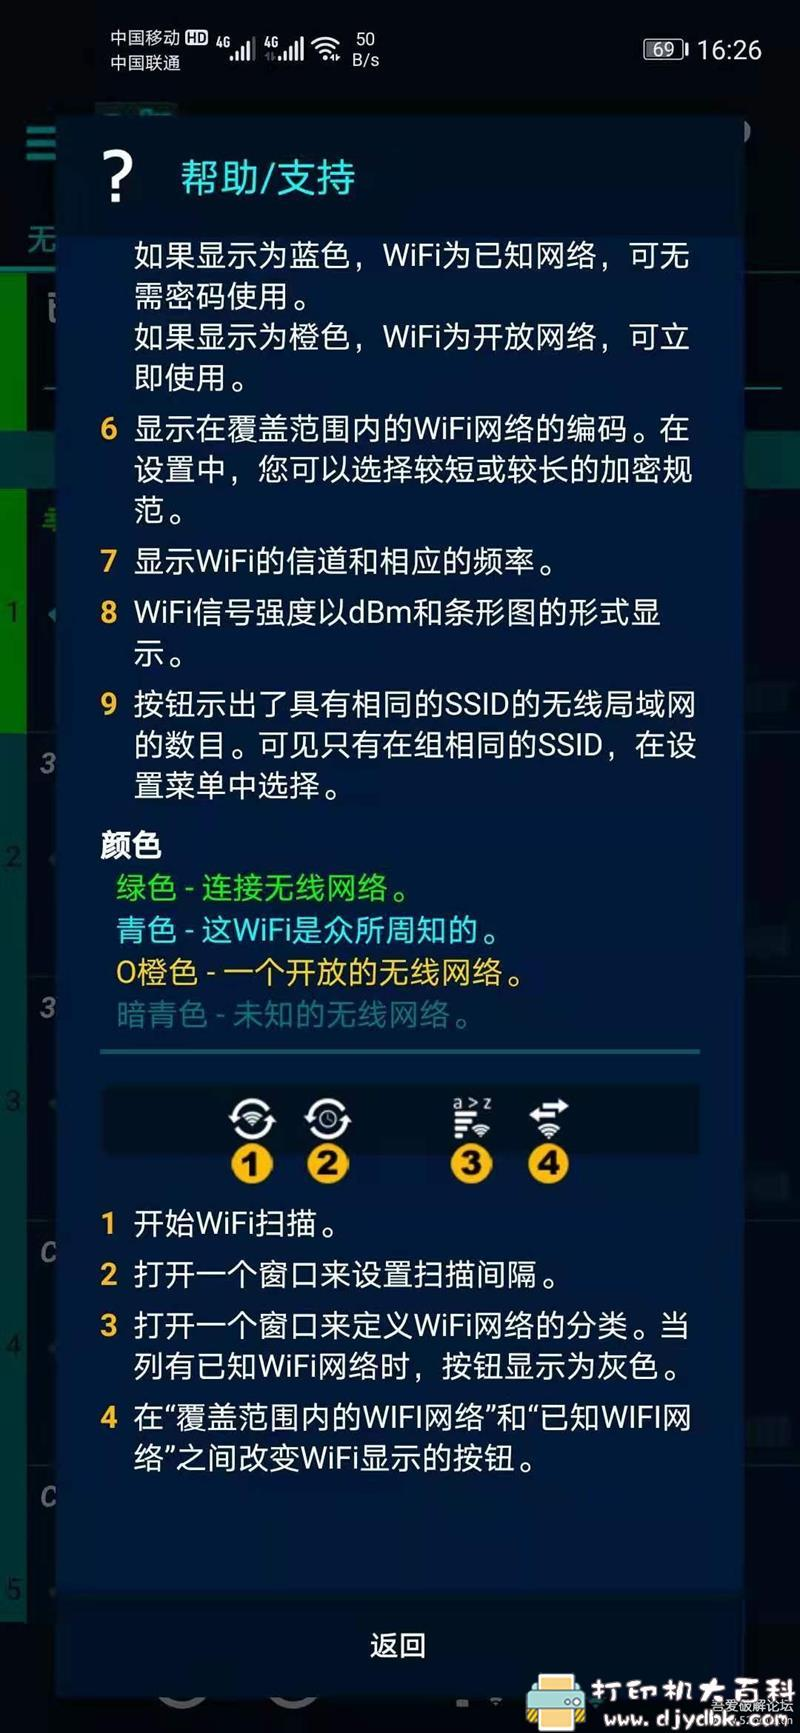 [Android]WIFI概观360专业版4.62.08,附使用教程 配图 No.8